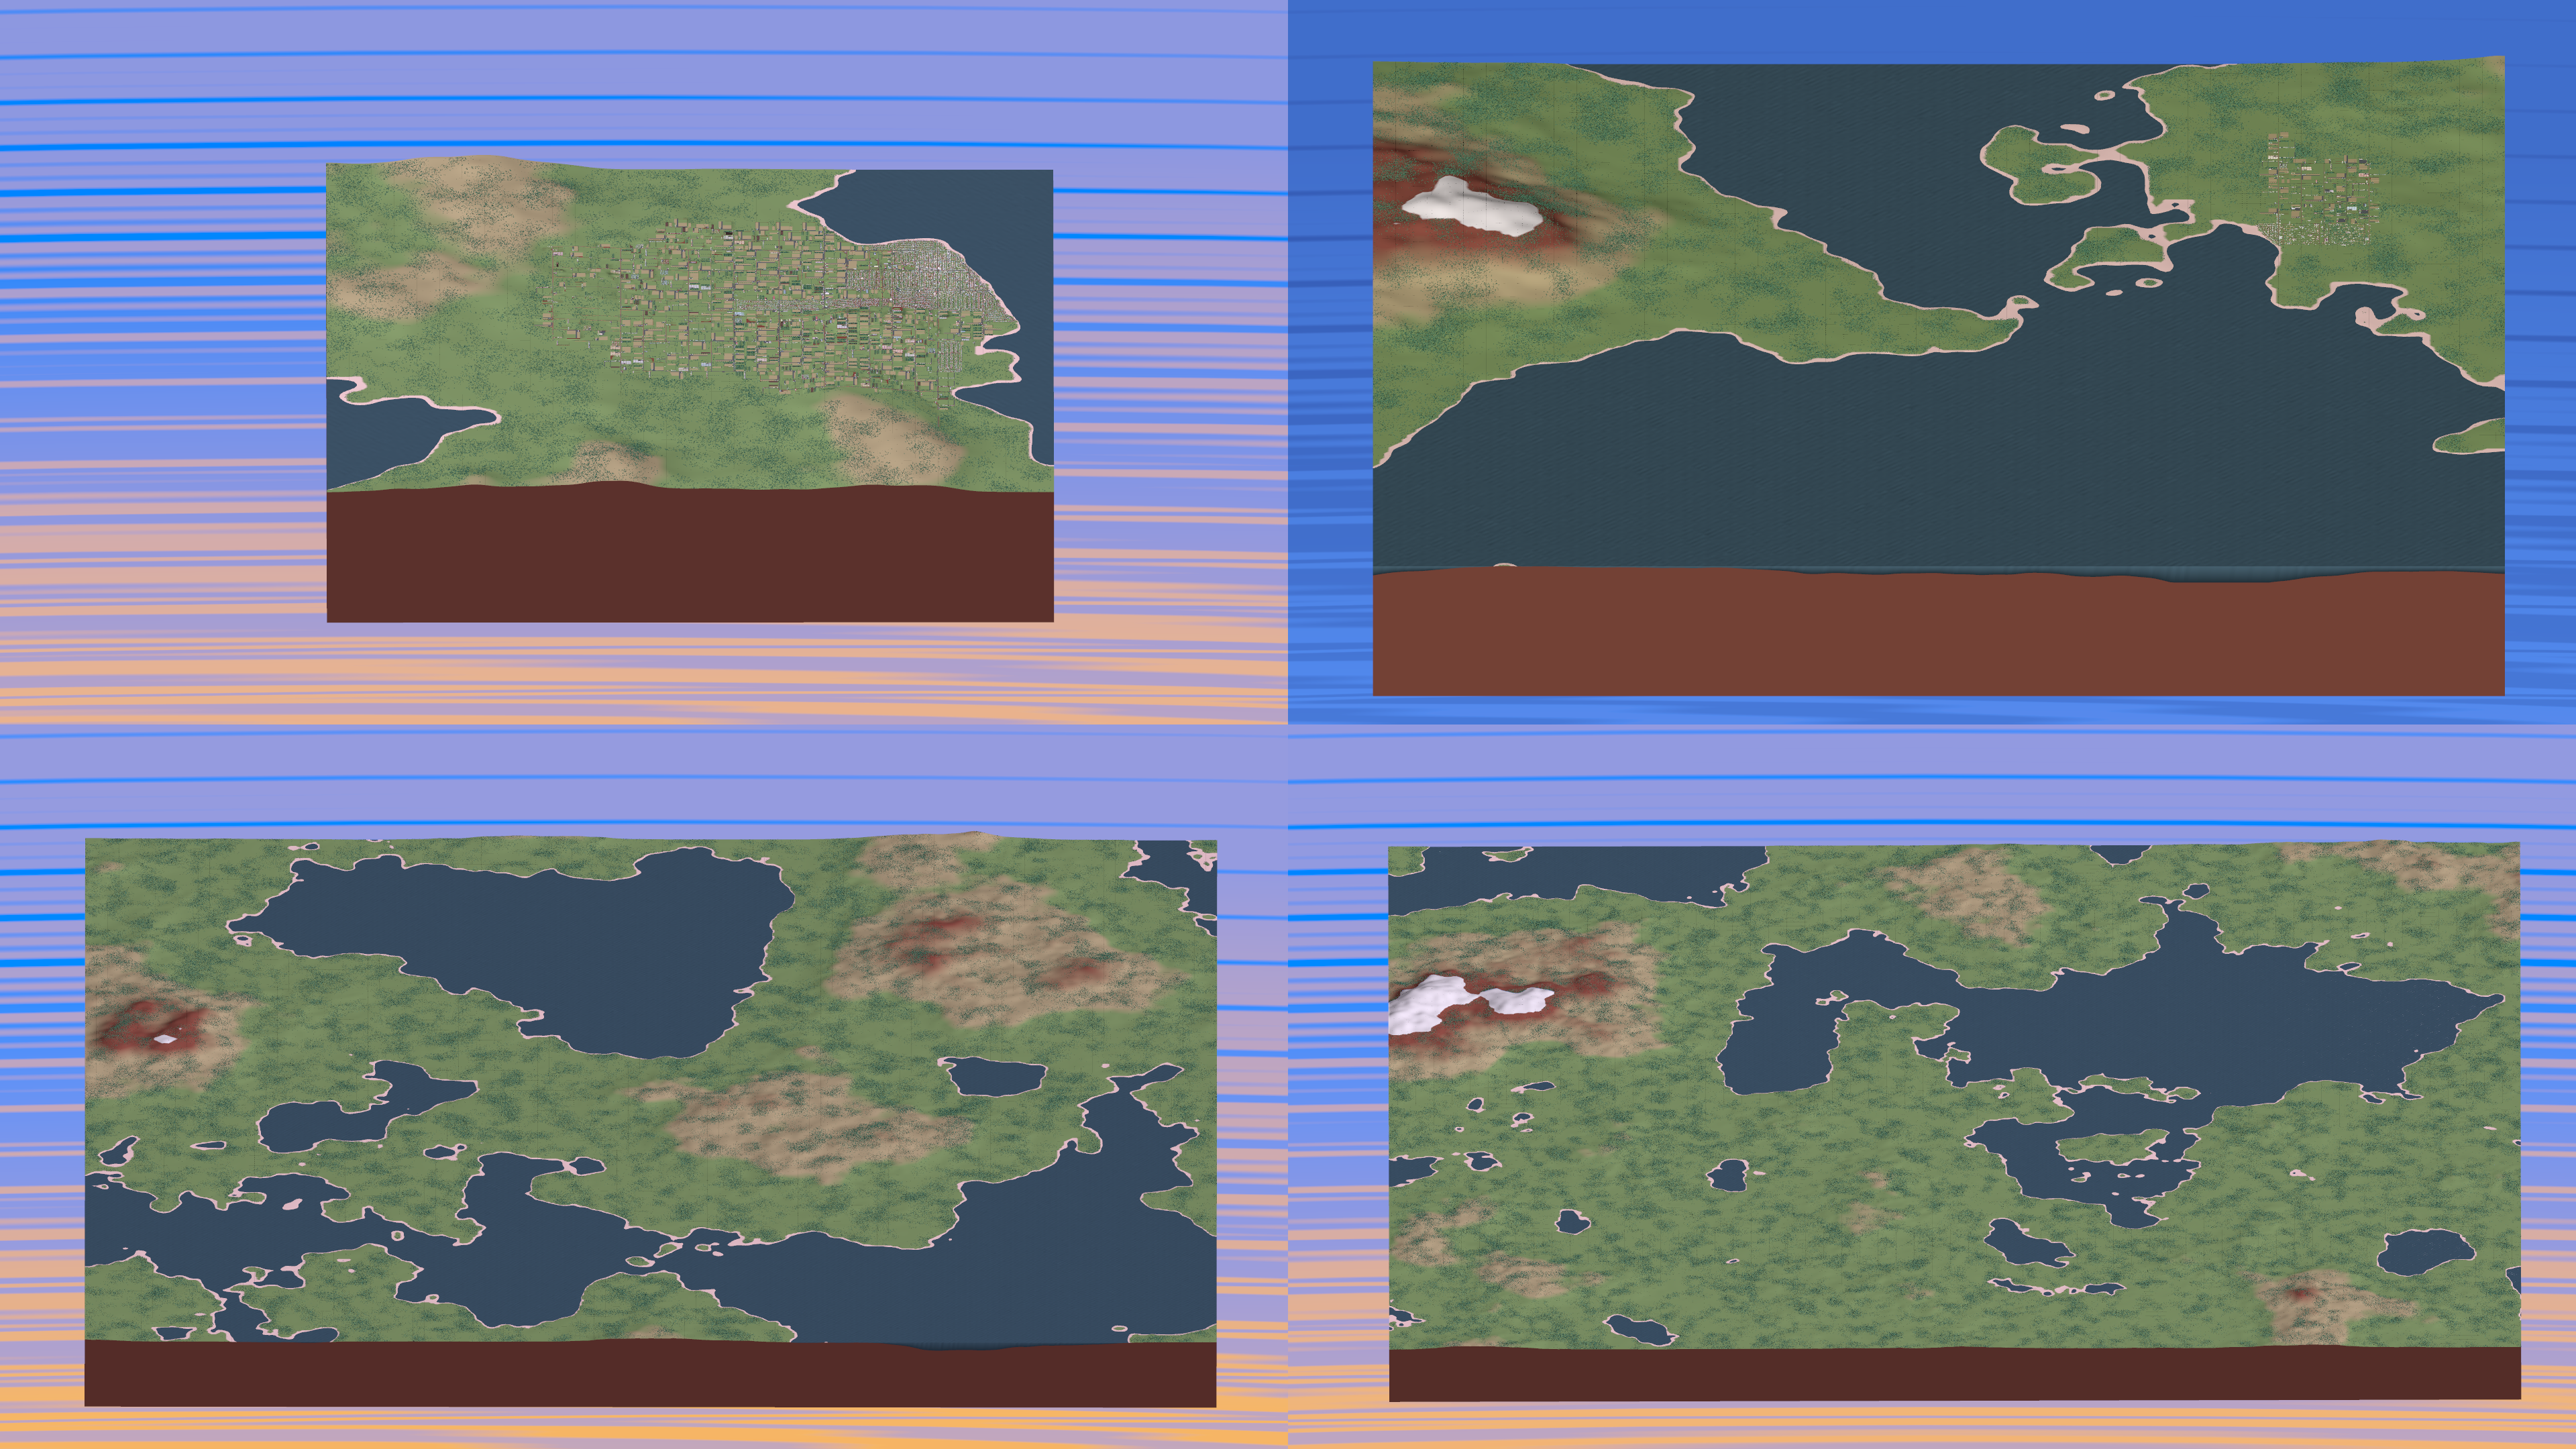 Map sizes compared -- 25x25, 50x50, 100x100, and 125x125